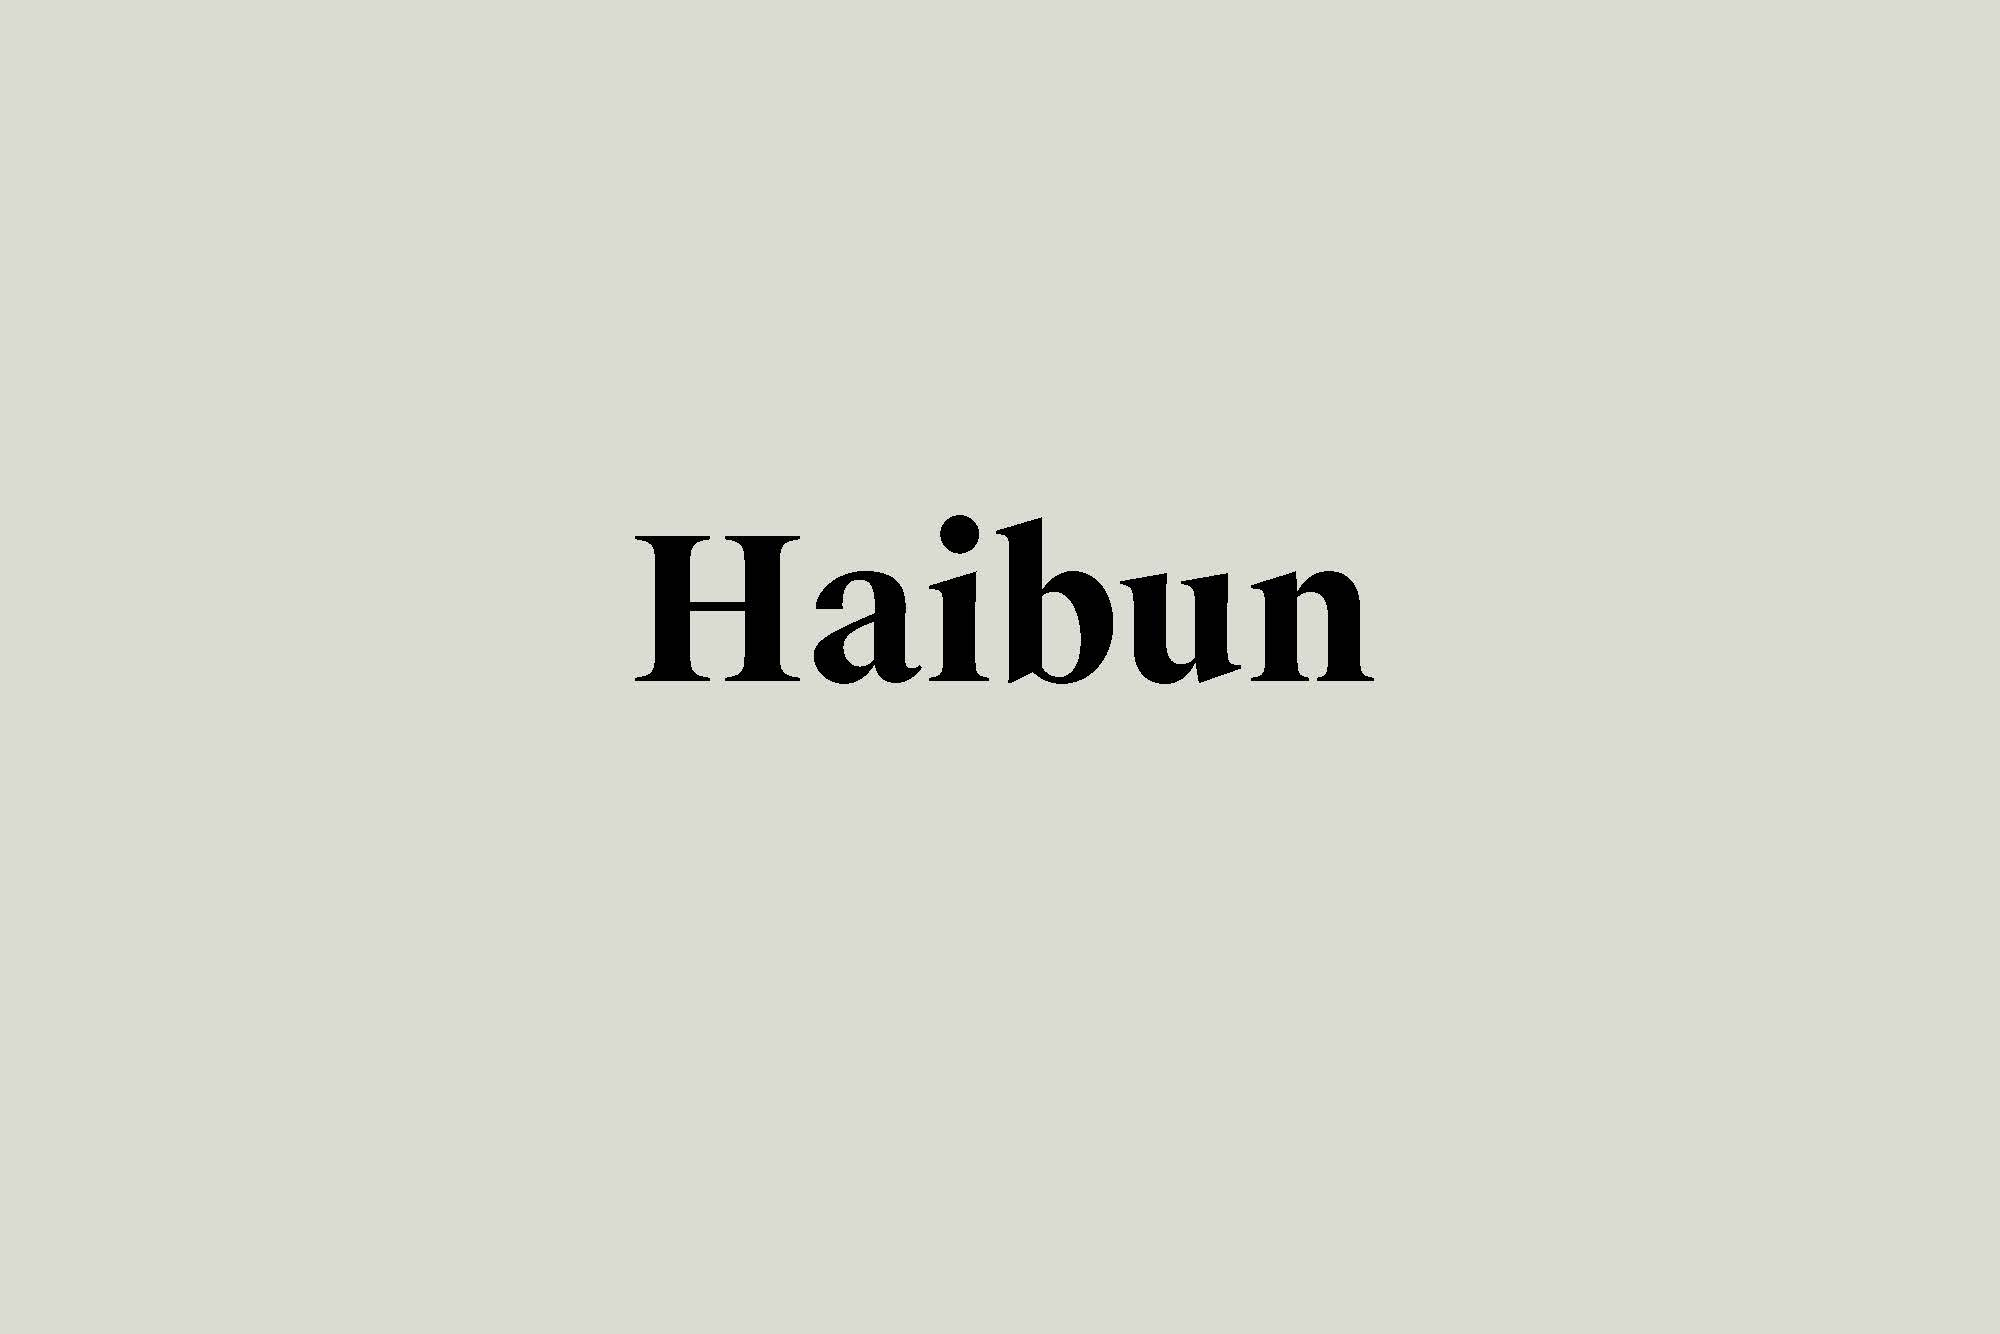 Learn about the Japanese poetic form, Haibun from Aimee Nezhukumatathil in her piece  More than the Birds, Bees, and Trees: A Closer Look at Writing Haibun . Traditionally Haibun focuses on nature and landscape, and at our workshop, we will be turning its lens toward fermented foods and our sense of taste.